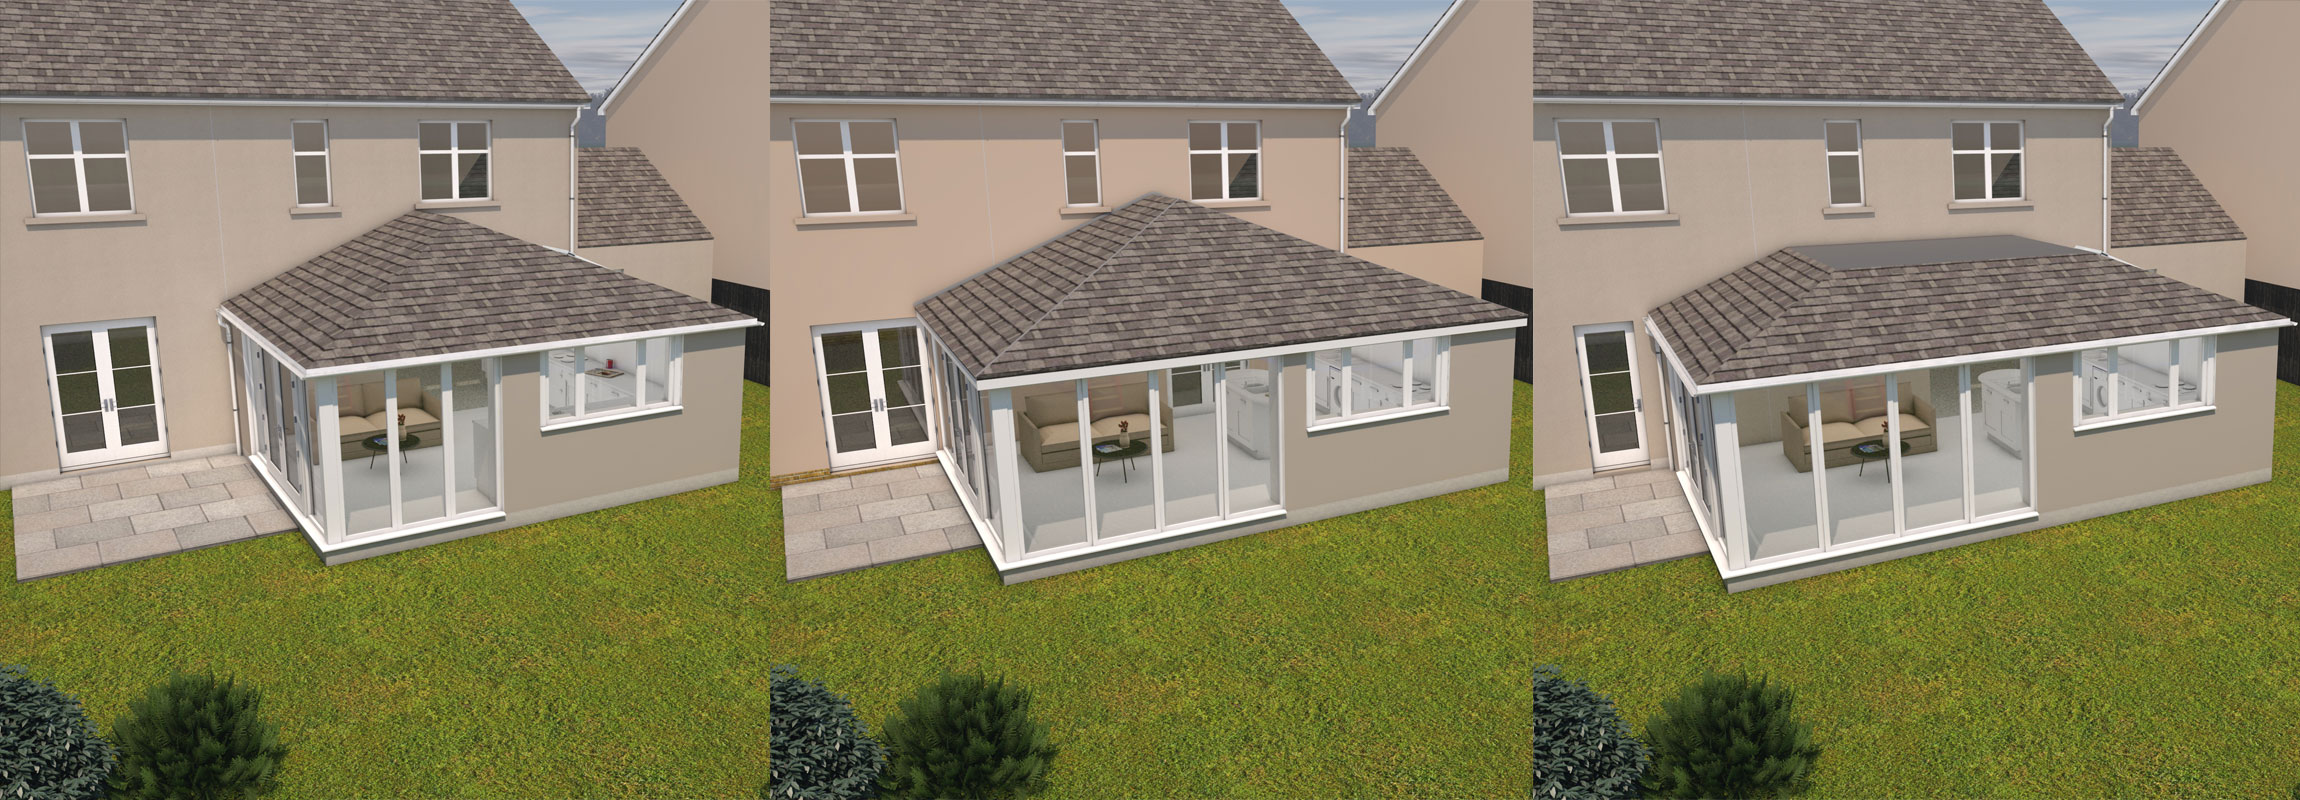 Thistle Home Extensions North East Scotland » FREE 3D Design Service